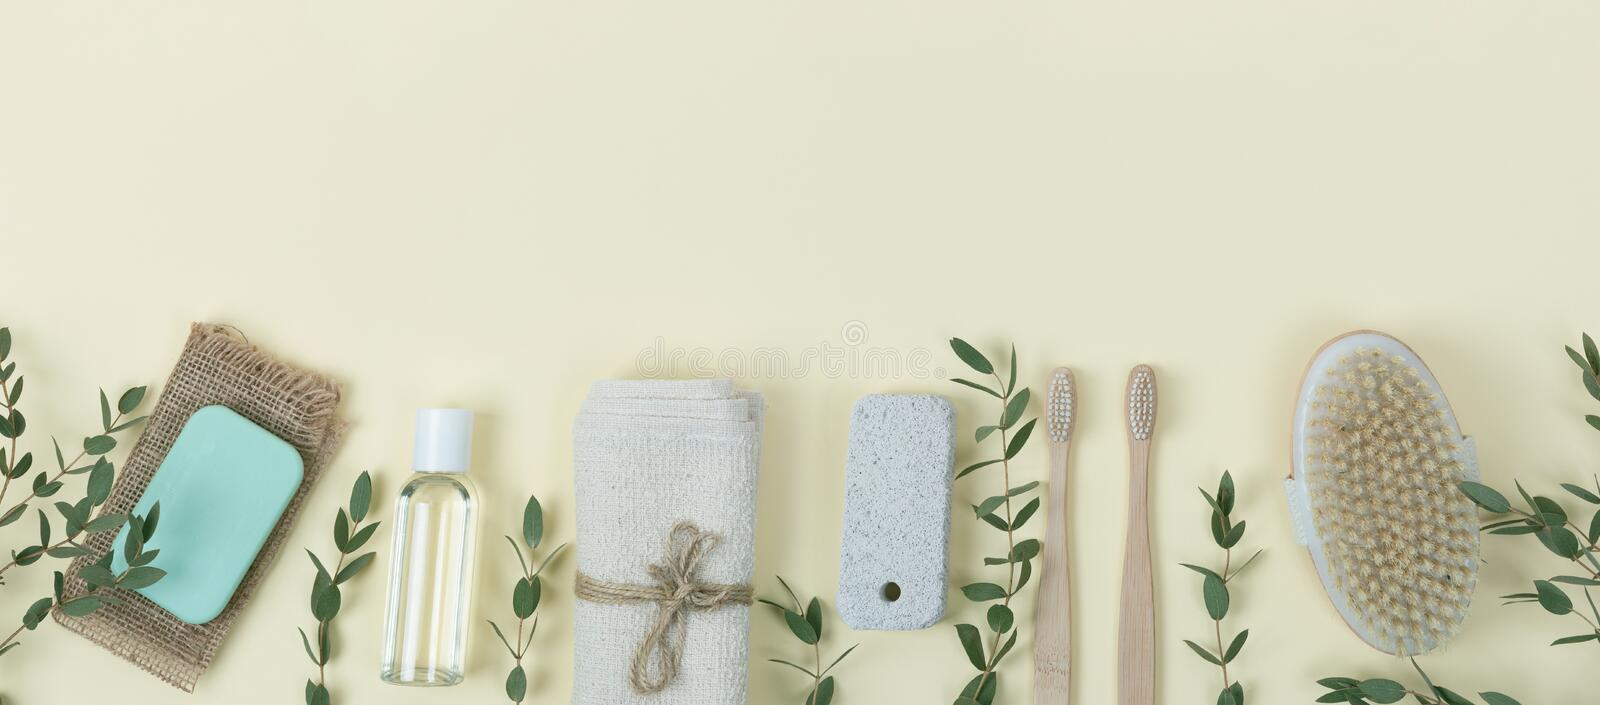 Various eco friendly spa treatment and wellness procucts. Different personal hygiene objects. Environmental awareness and beauty royalty free stock image